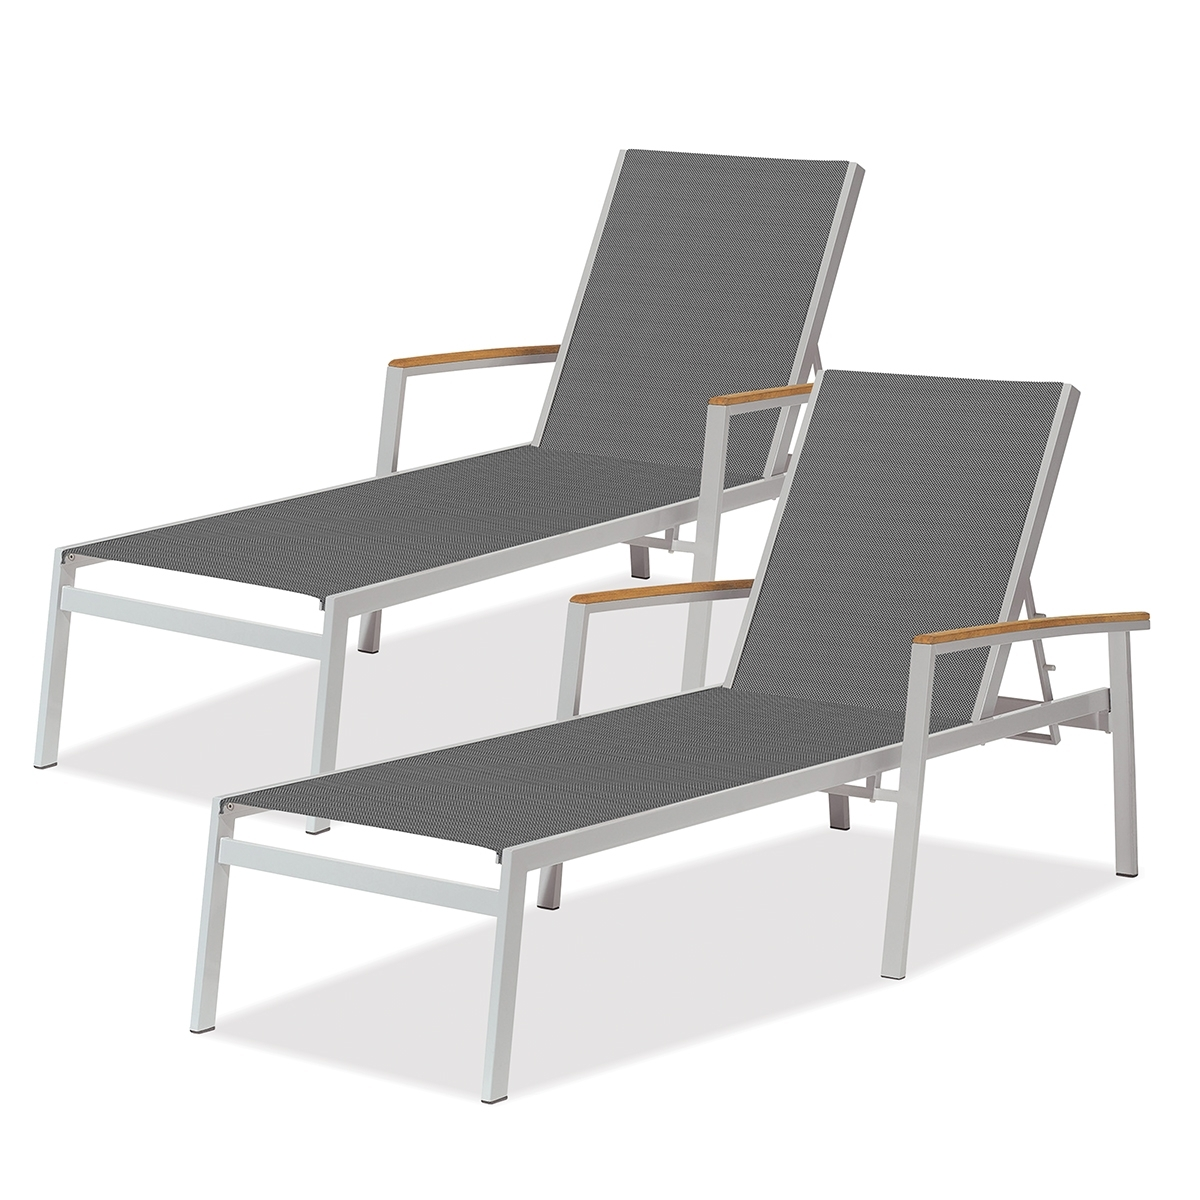 Madrone Regarding Fashionable Commercial Grade Chaise Lounge Chairs (View 9 of 15)